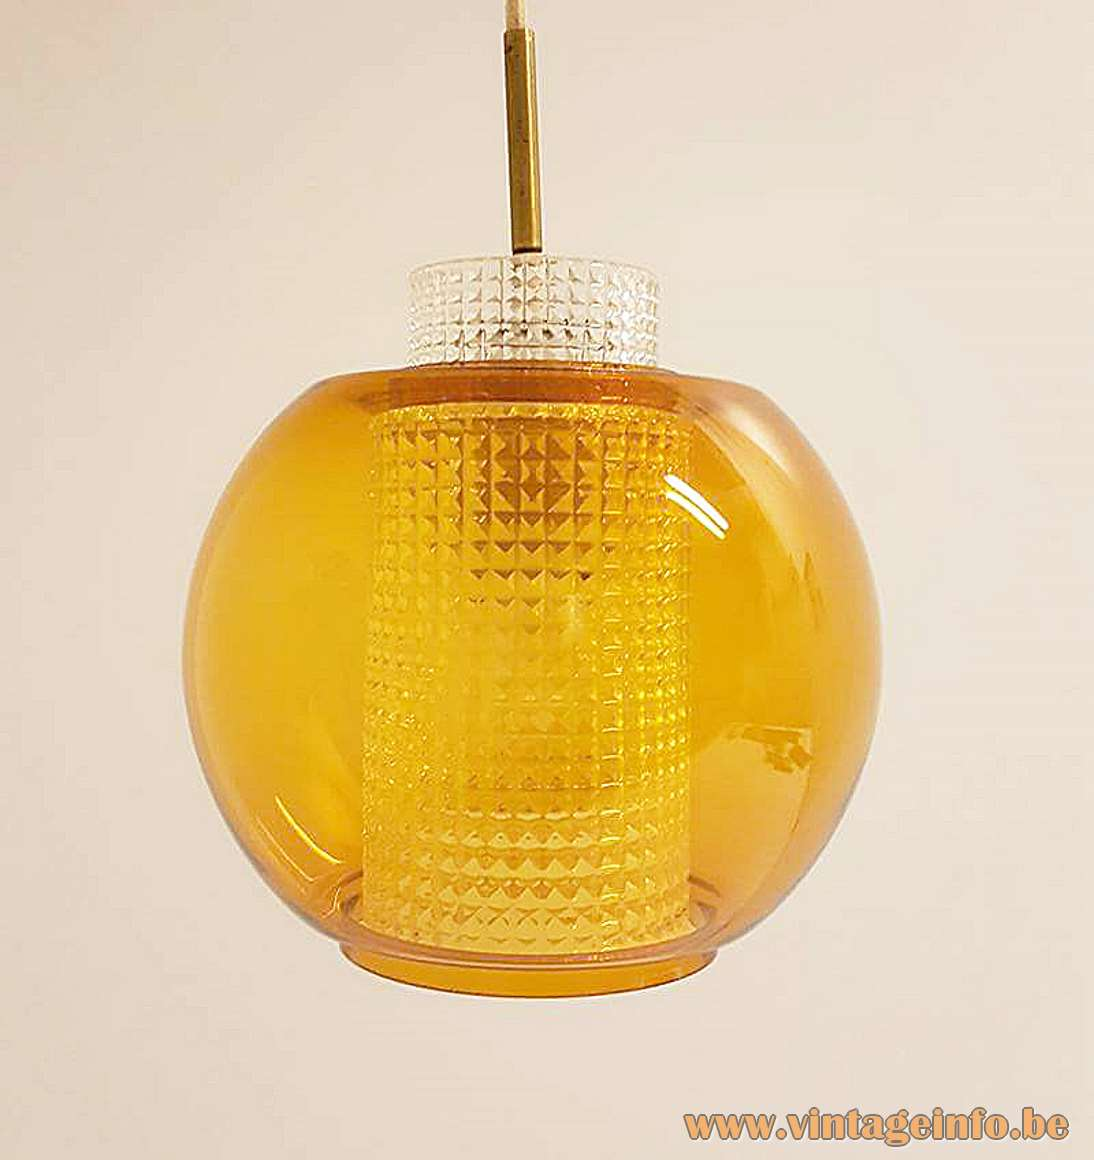 Nordisk Solar amber glass globe pendant lamp round clear diffuser 1960s model P 1102 MCM brass